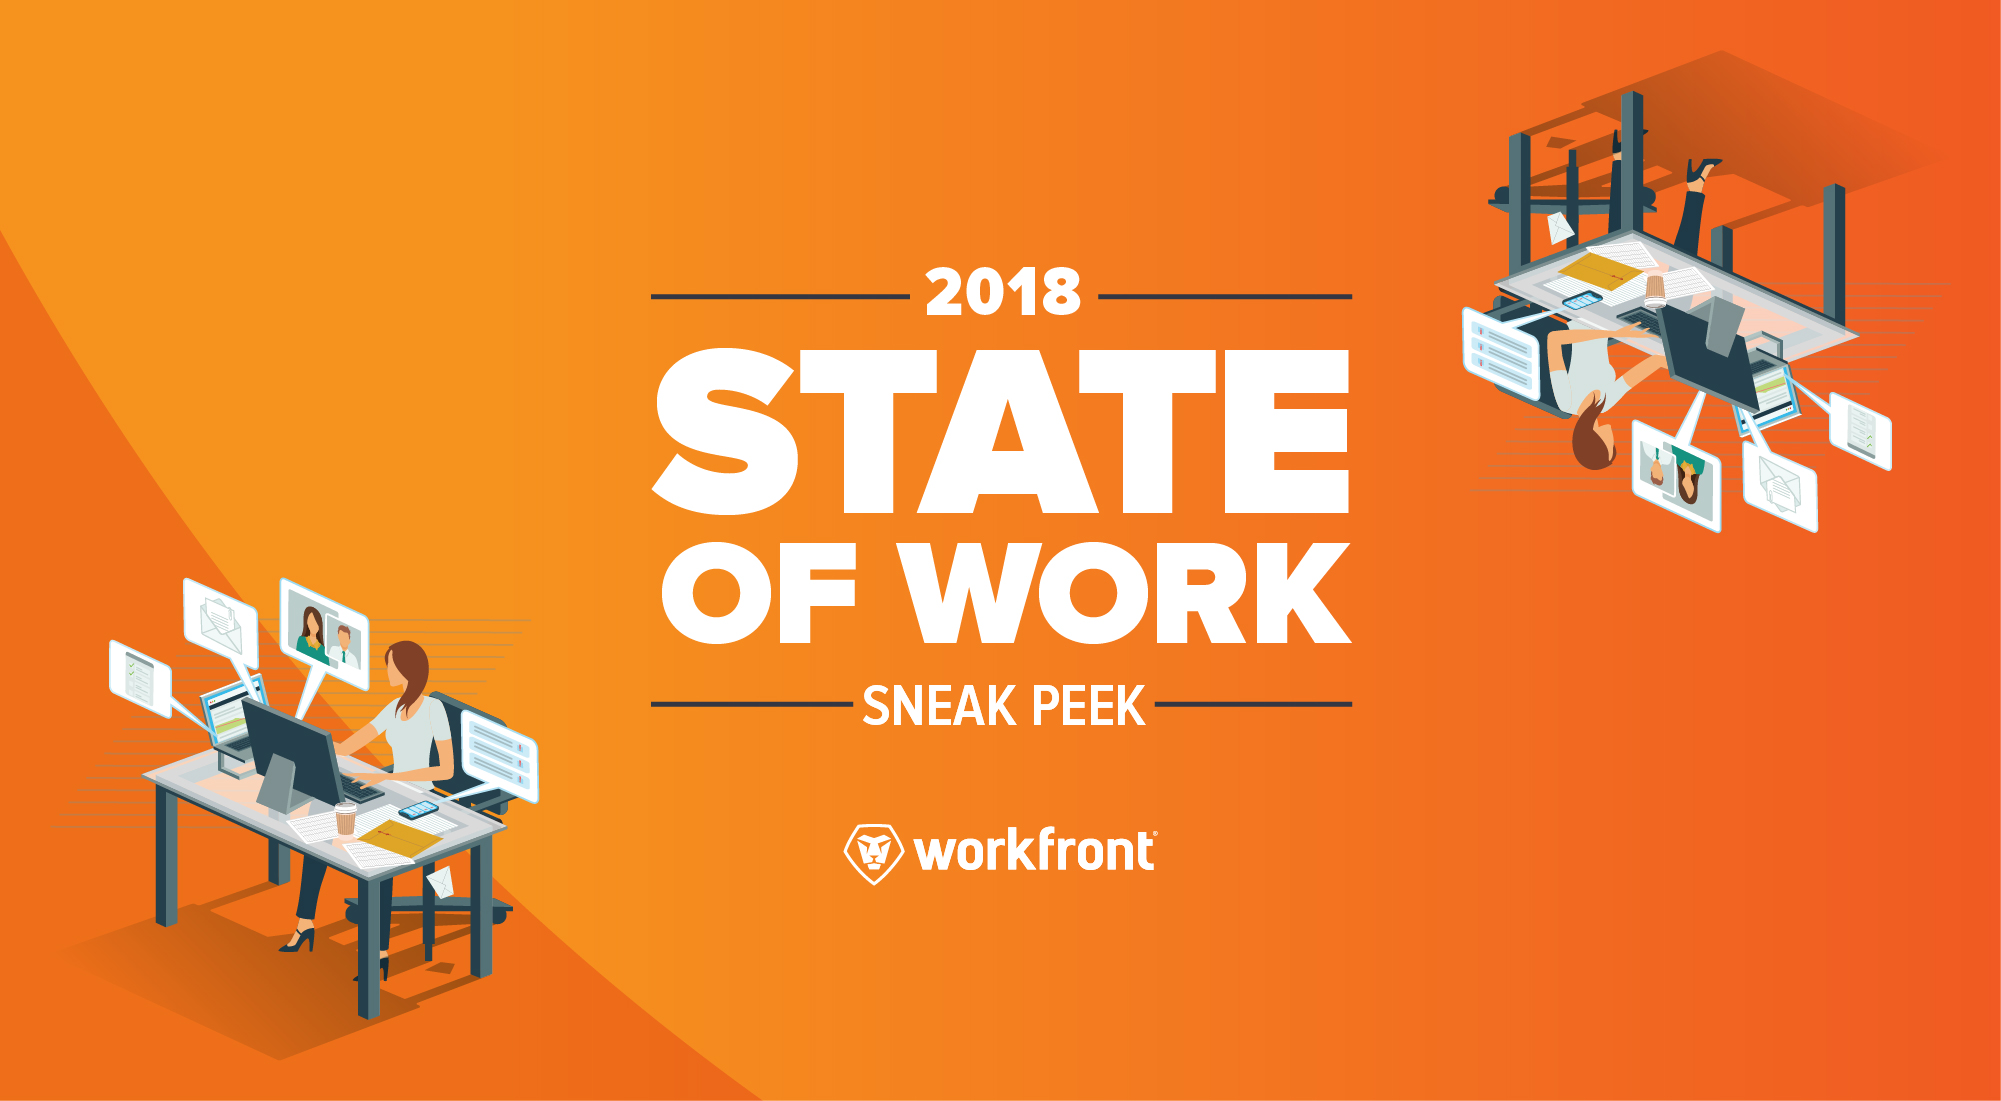 state of work sneak peek